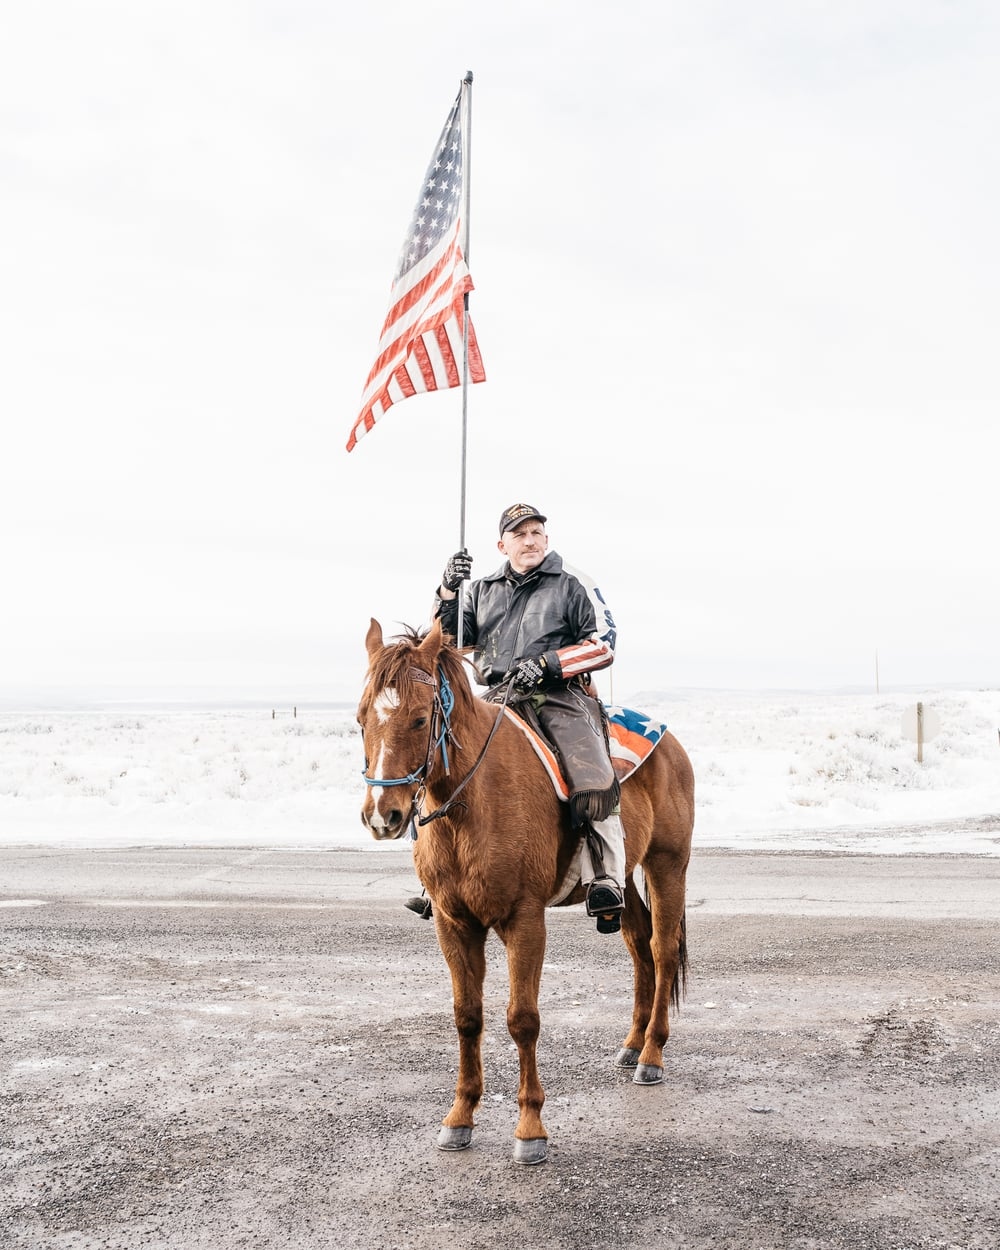 burns_oregon_standoff_587.jpg